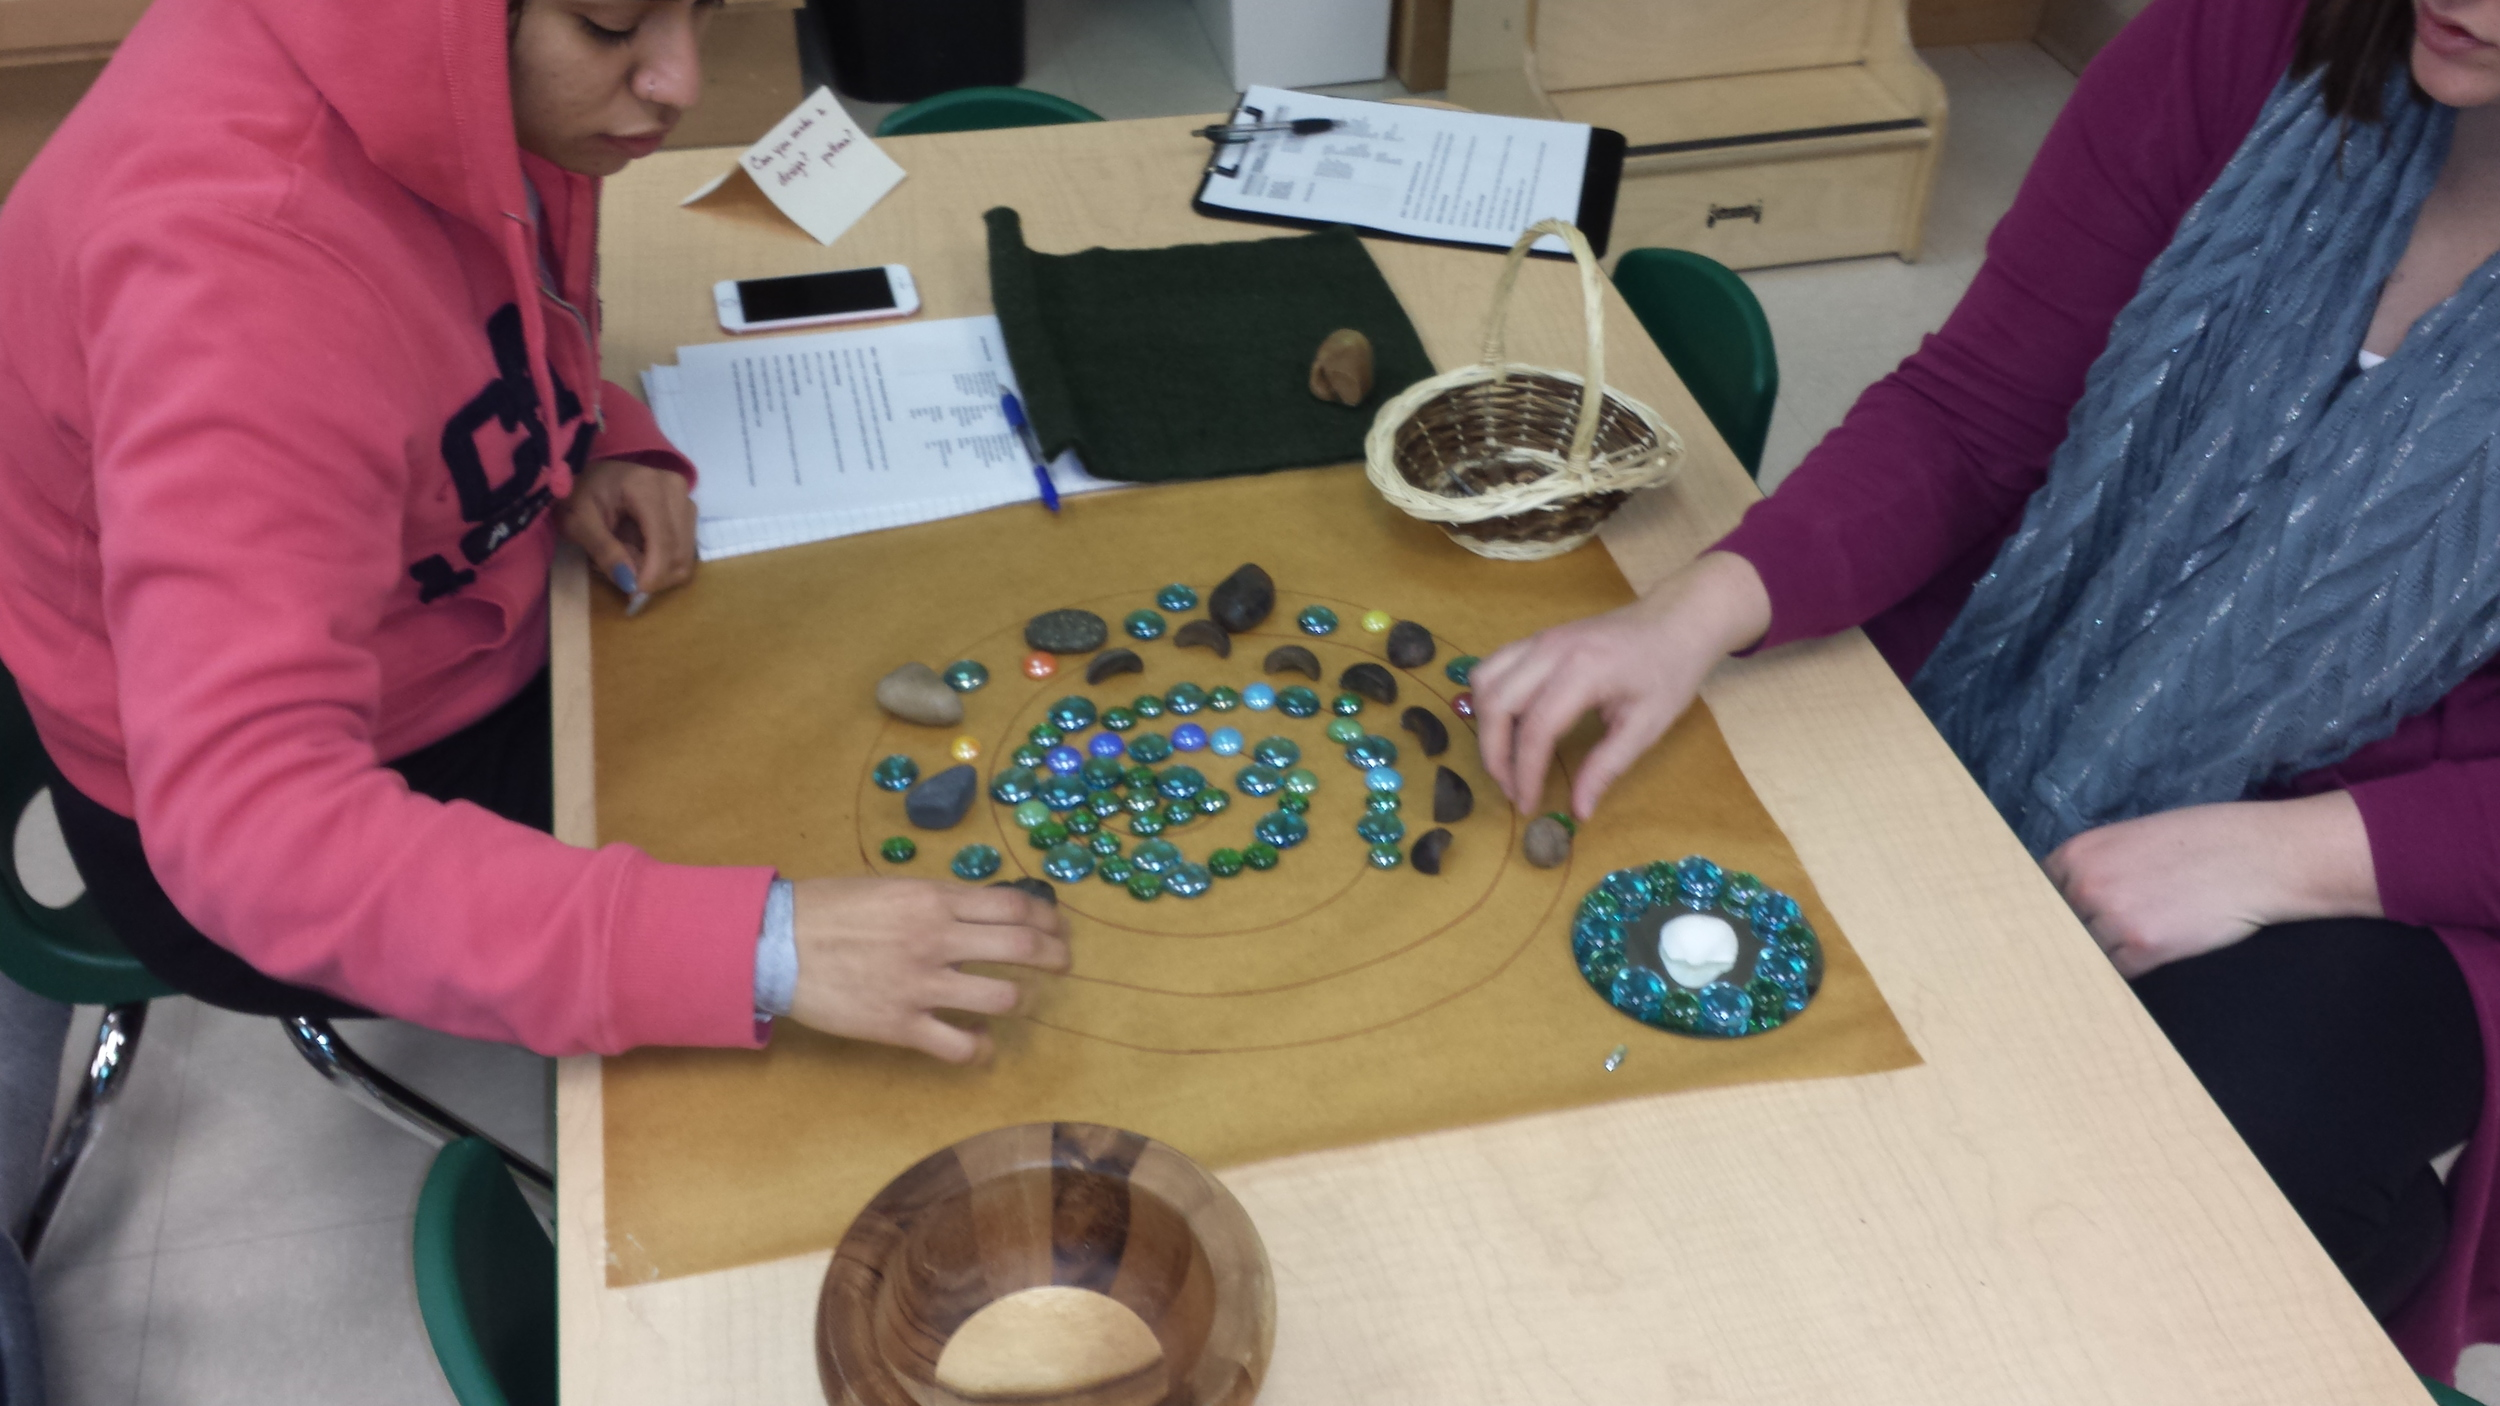 Early Childhood Educators engaged in a nature play station, designing with natural materials.